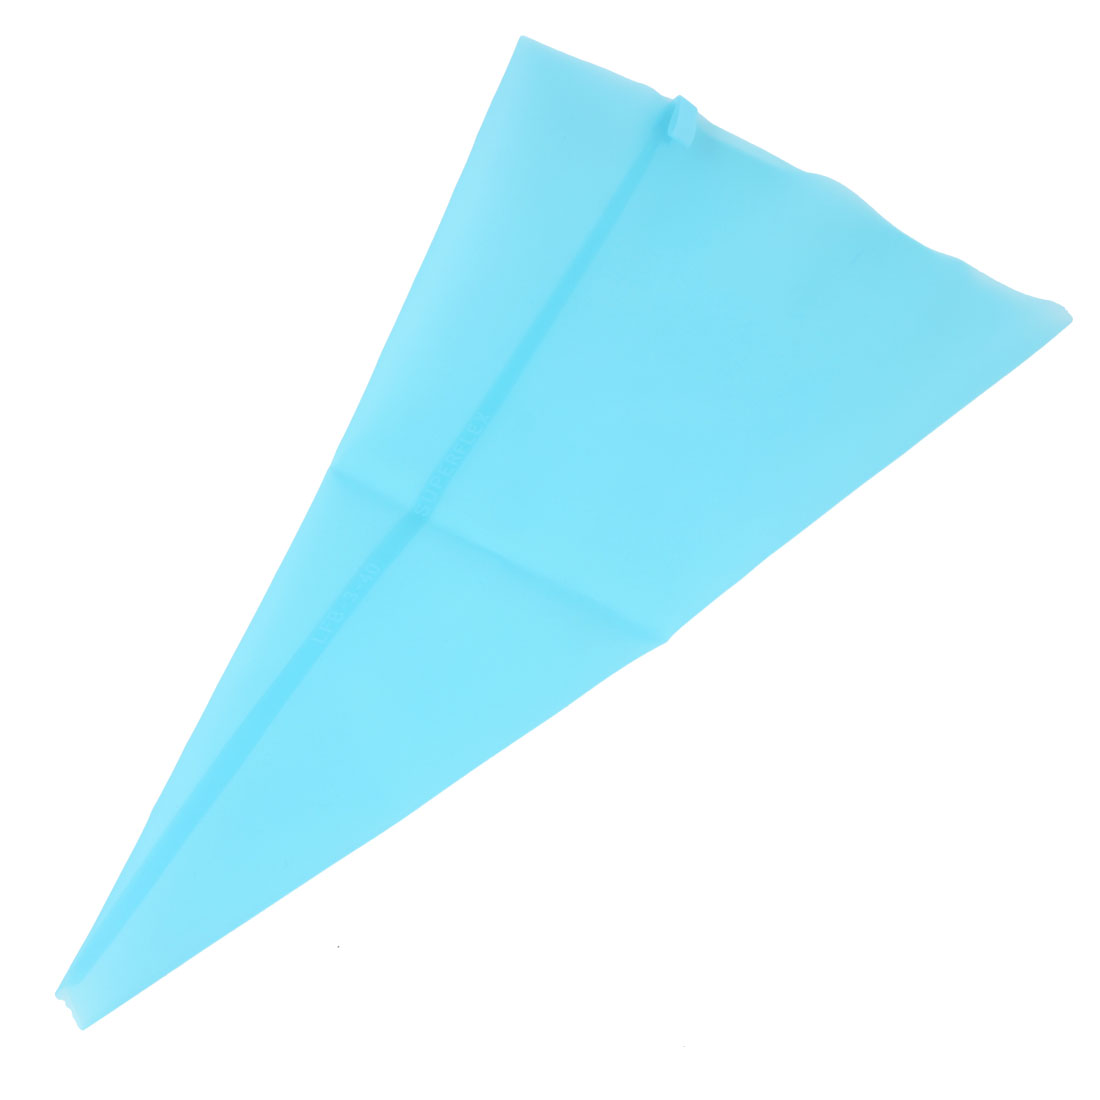 31cm Length Blue Silicone Pastry Piping Bag for Cake Bread Toast Making